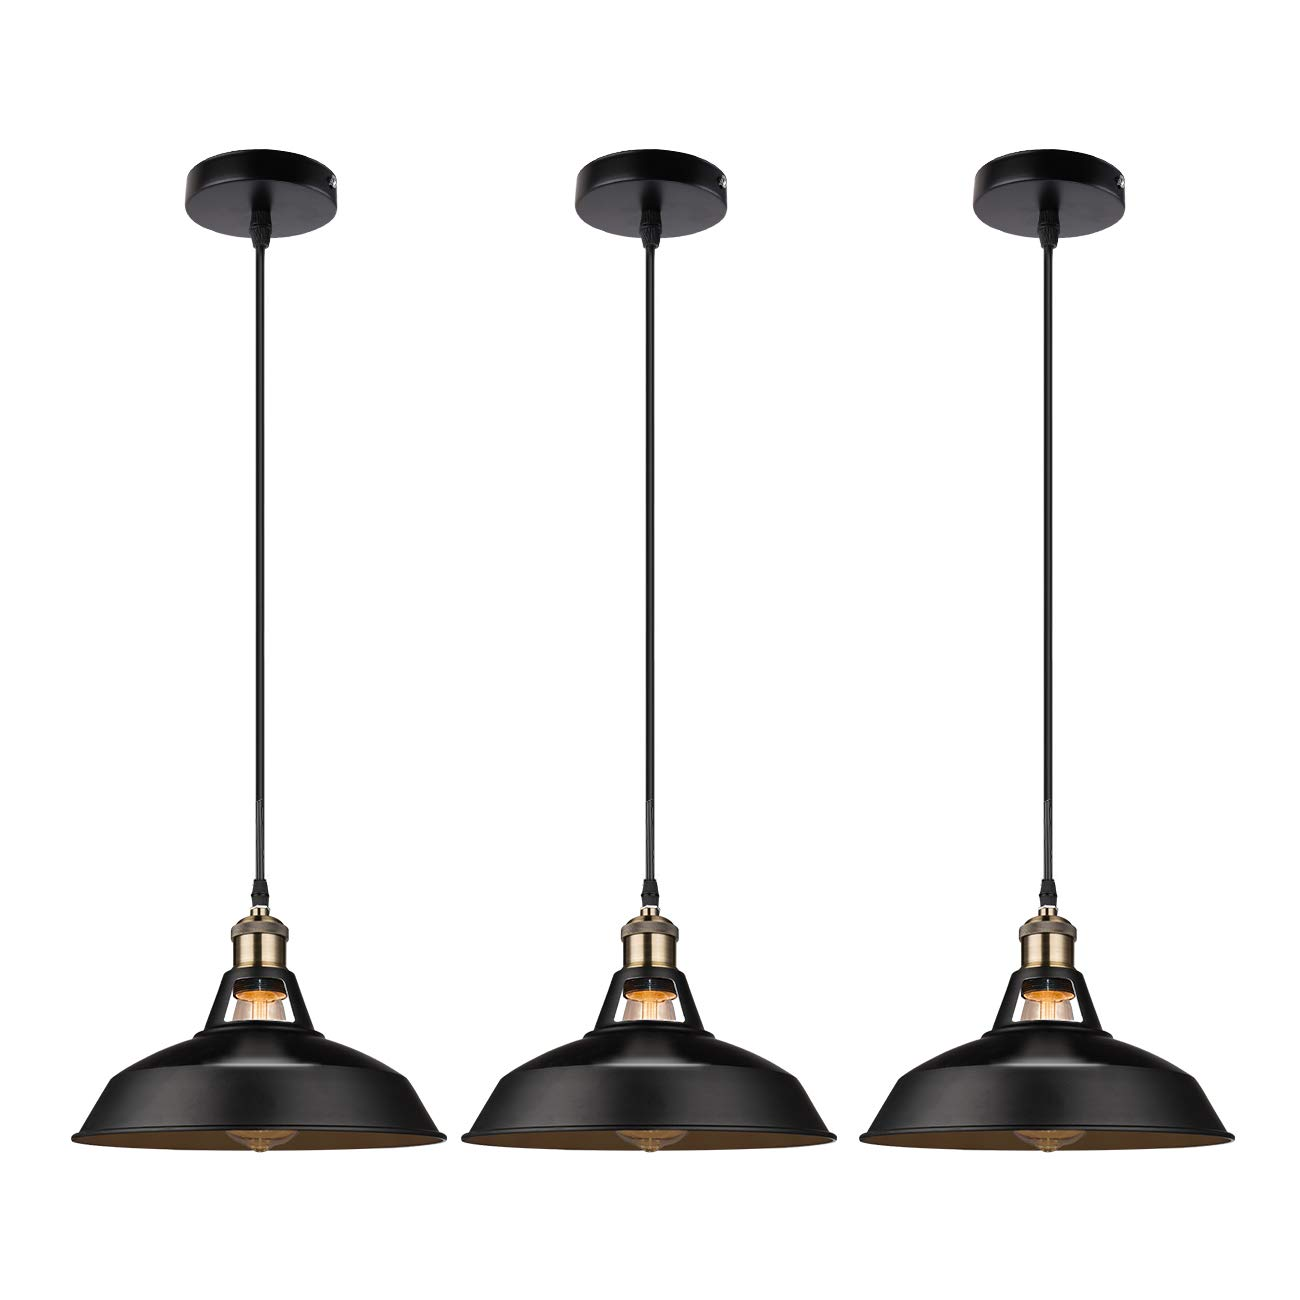 Galygg retro industrial pendant lighting black ceiling light fixtures metal shade hanging pendant lights 10 63 in diameter for kitchen island included 4w